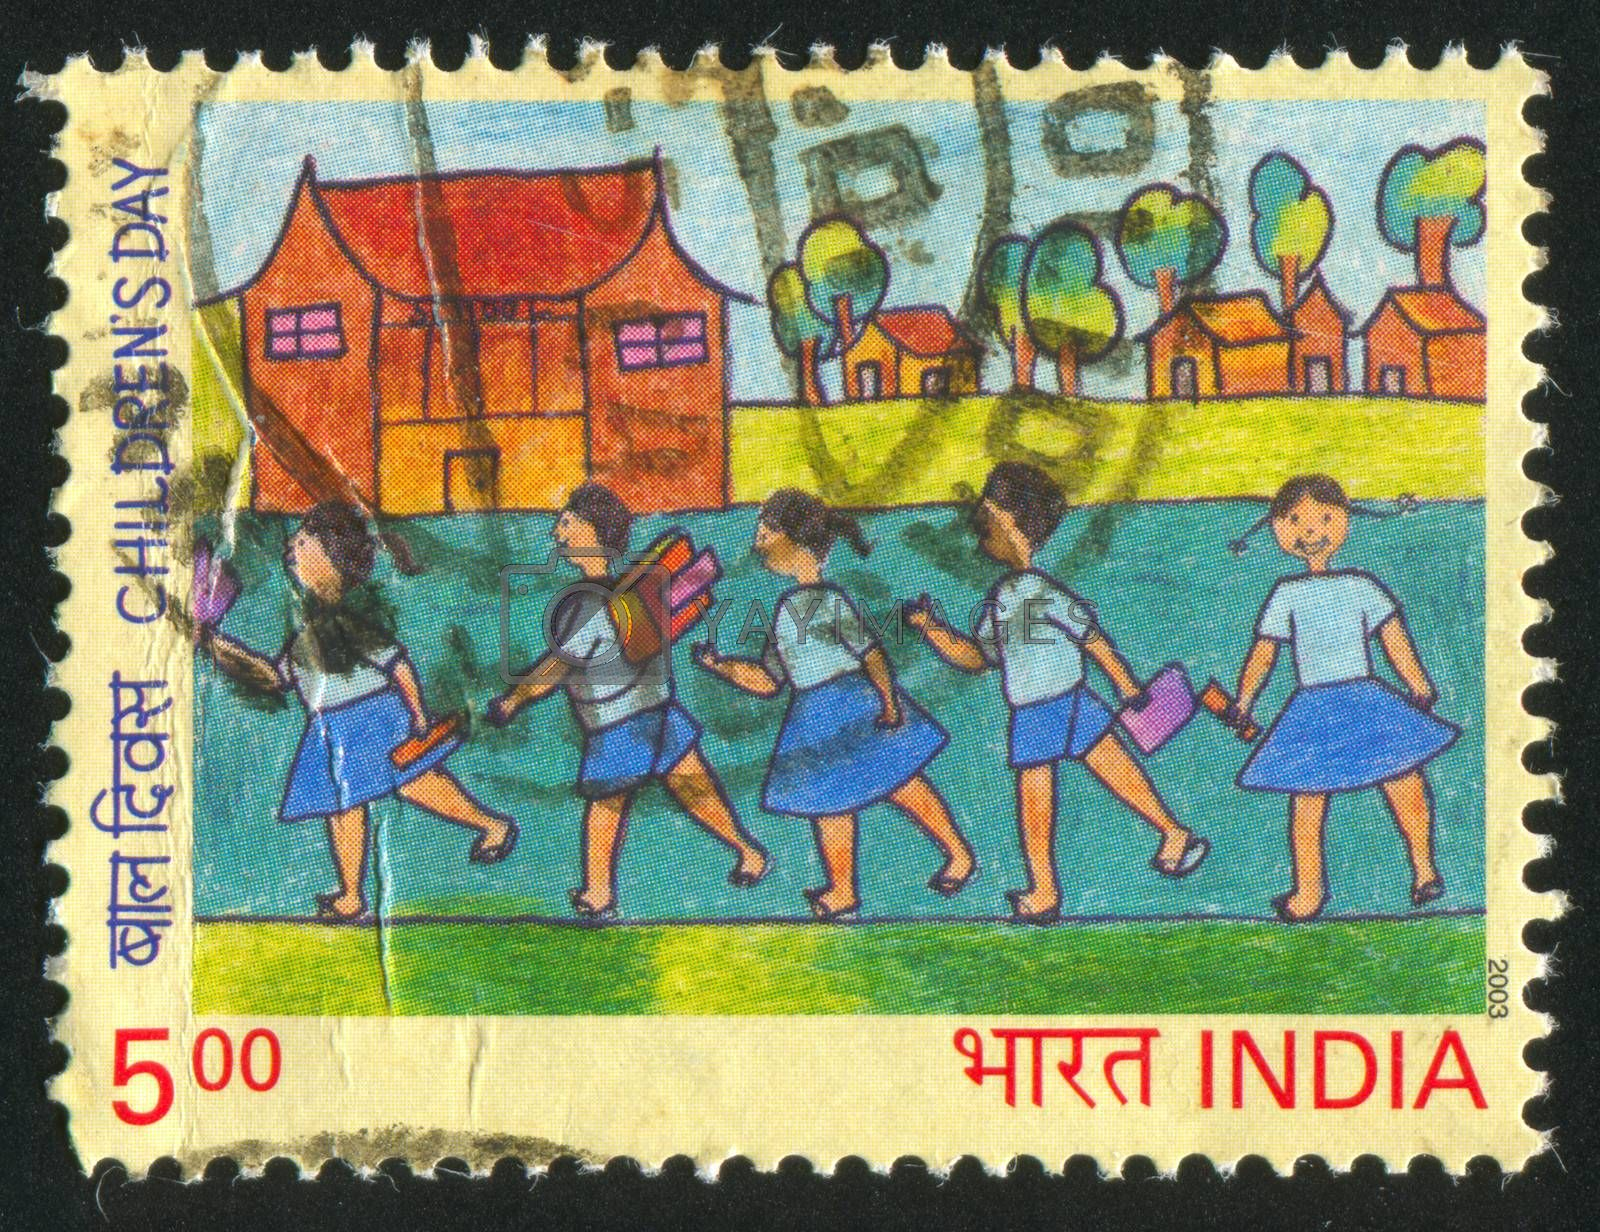 INDIA - CIRCA 2003: stamp printed by India, shows Children picture, circa 2003